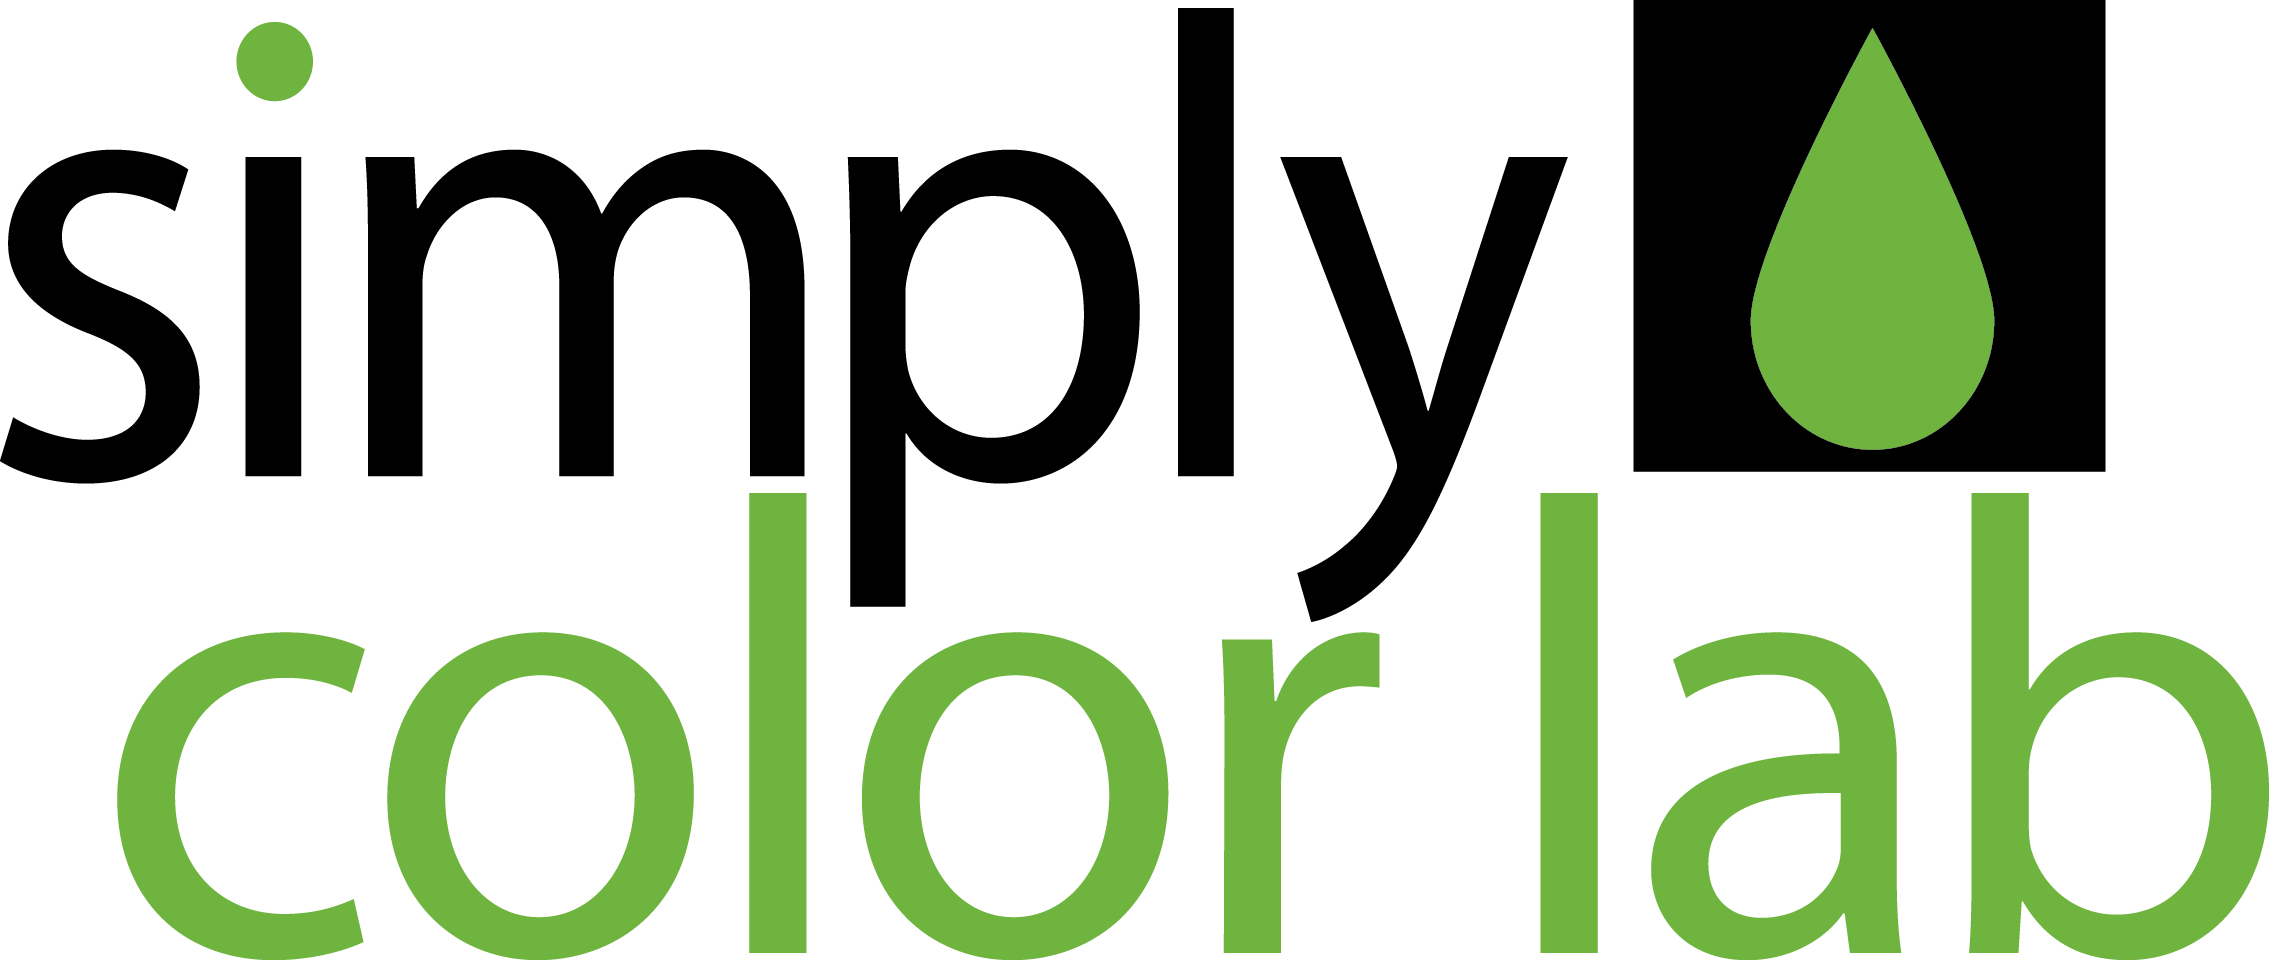 simplycolorlab.png